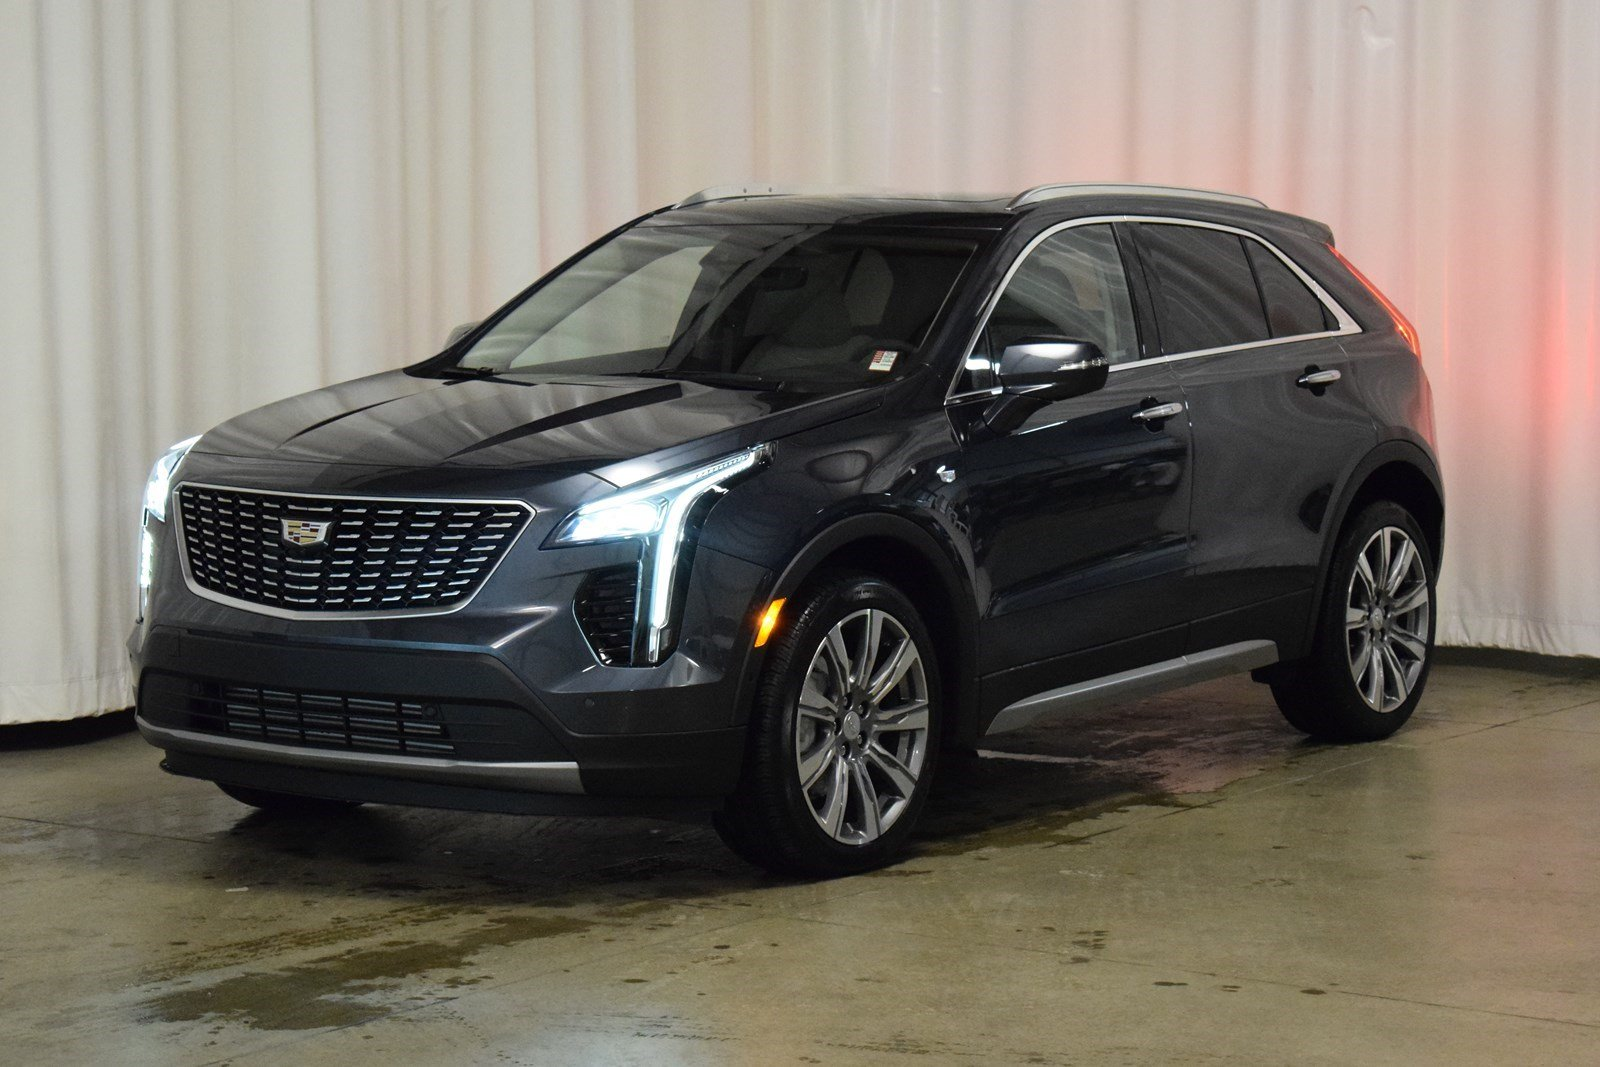 New 2019 Cadillac Xt4 Awd Premium Luxury Suv In Fremont 2c19033